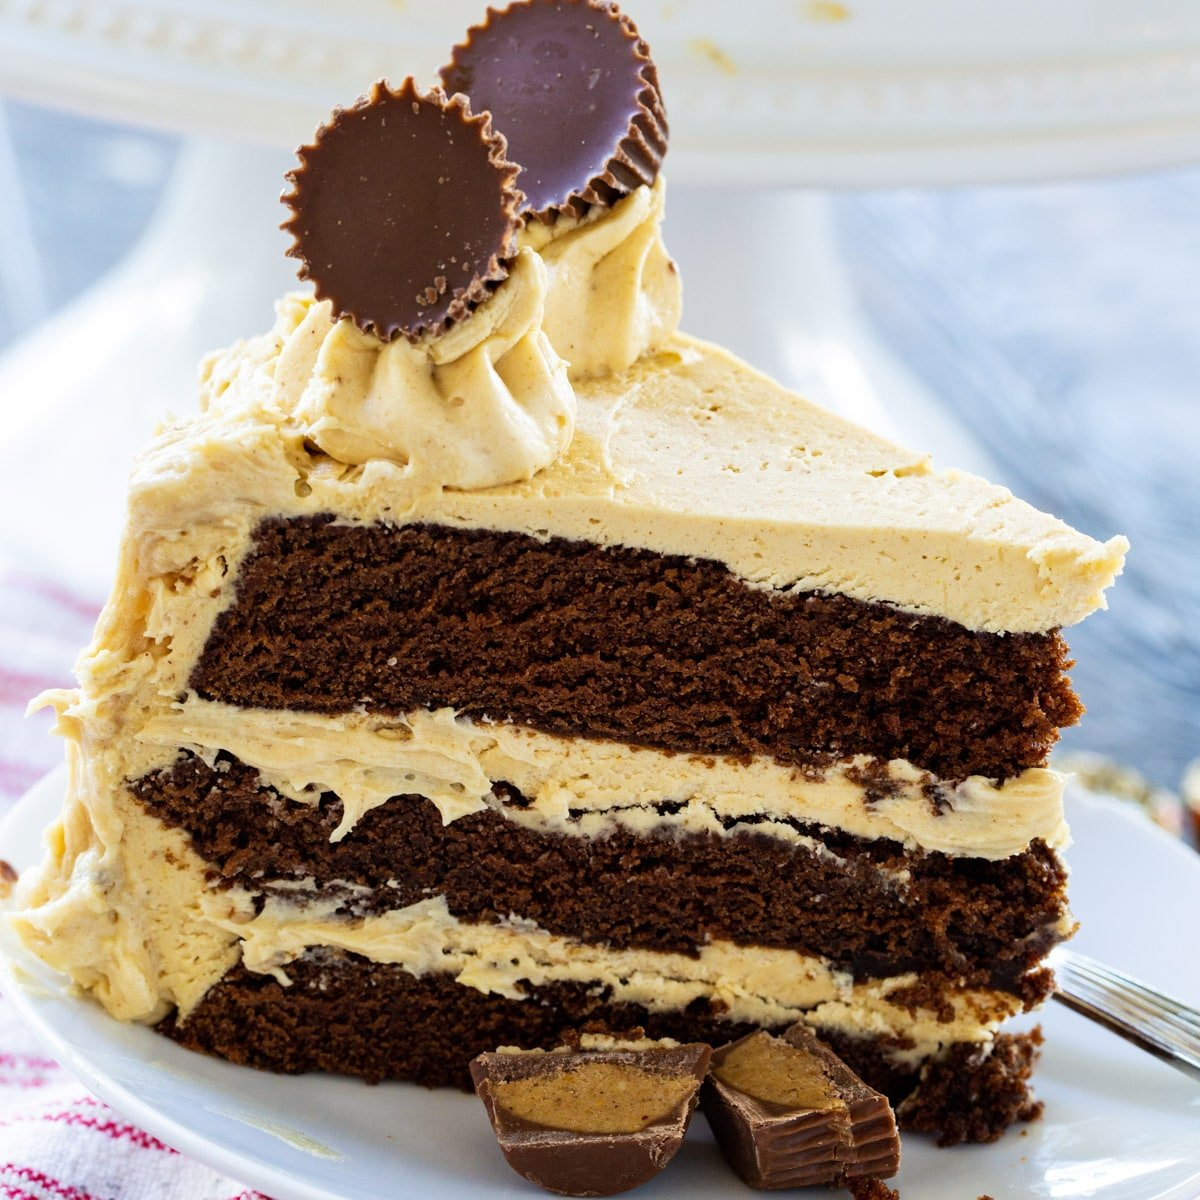 Slice of Peanut Butter Cup Cake topped with 2 mini peanut butter cups.